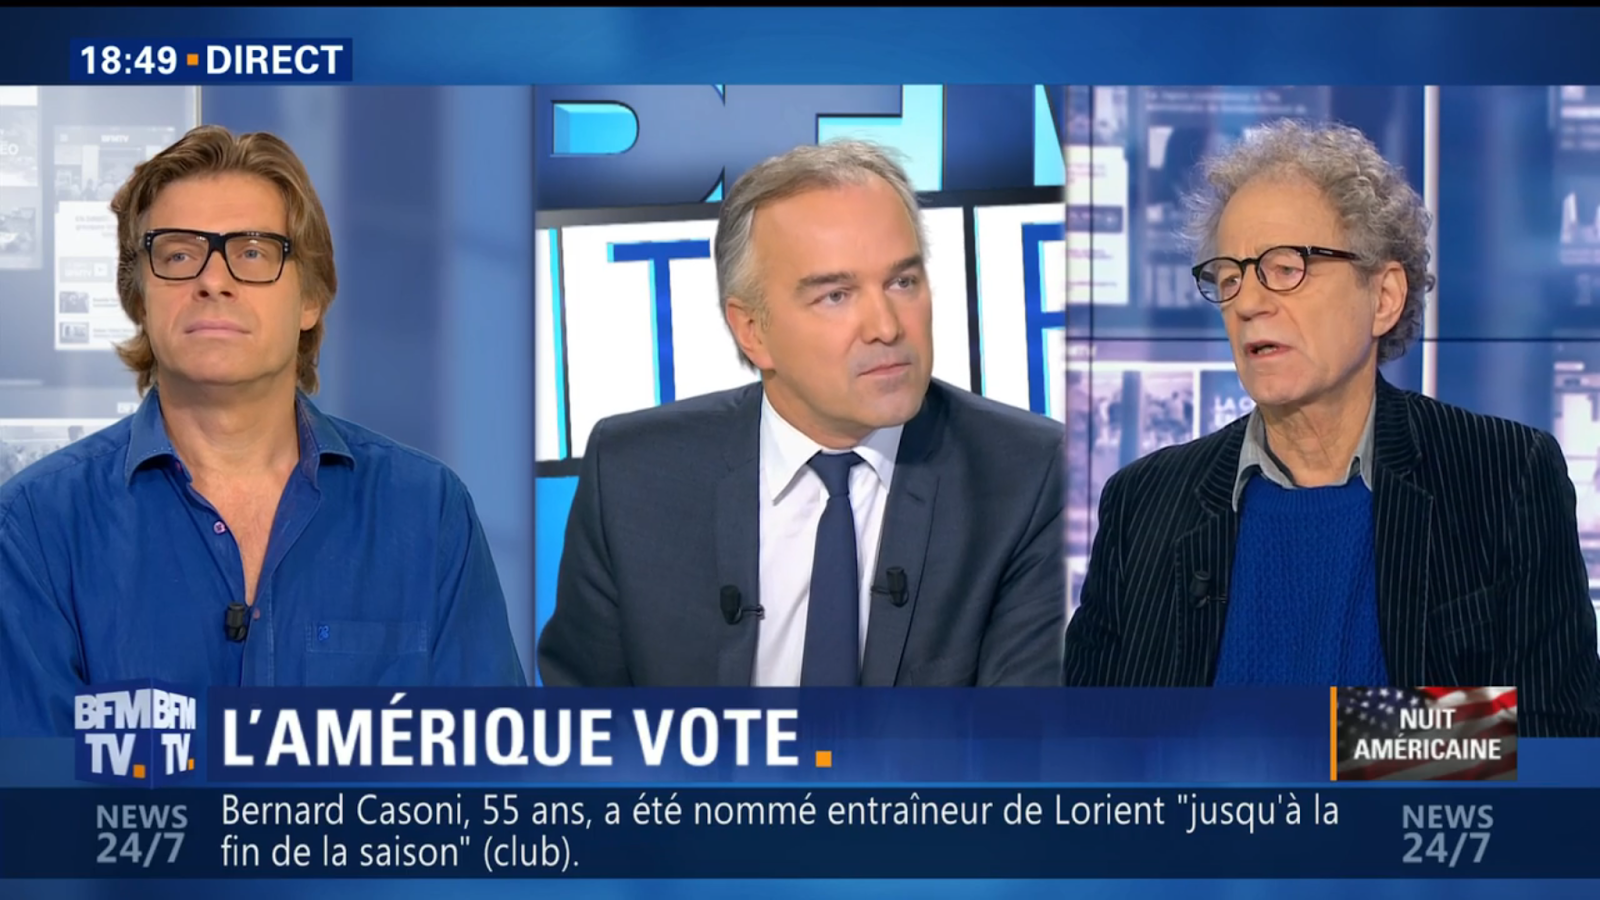 ... Votes — Republican and Democrat Clash on France's BFMTV Station